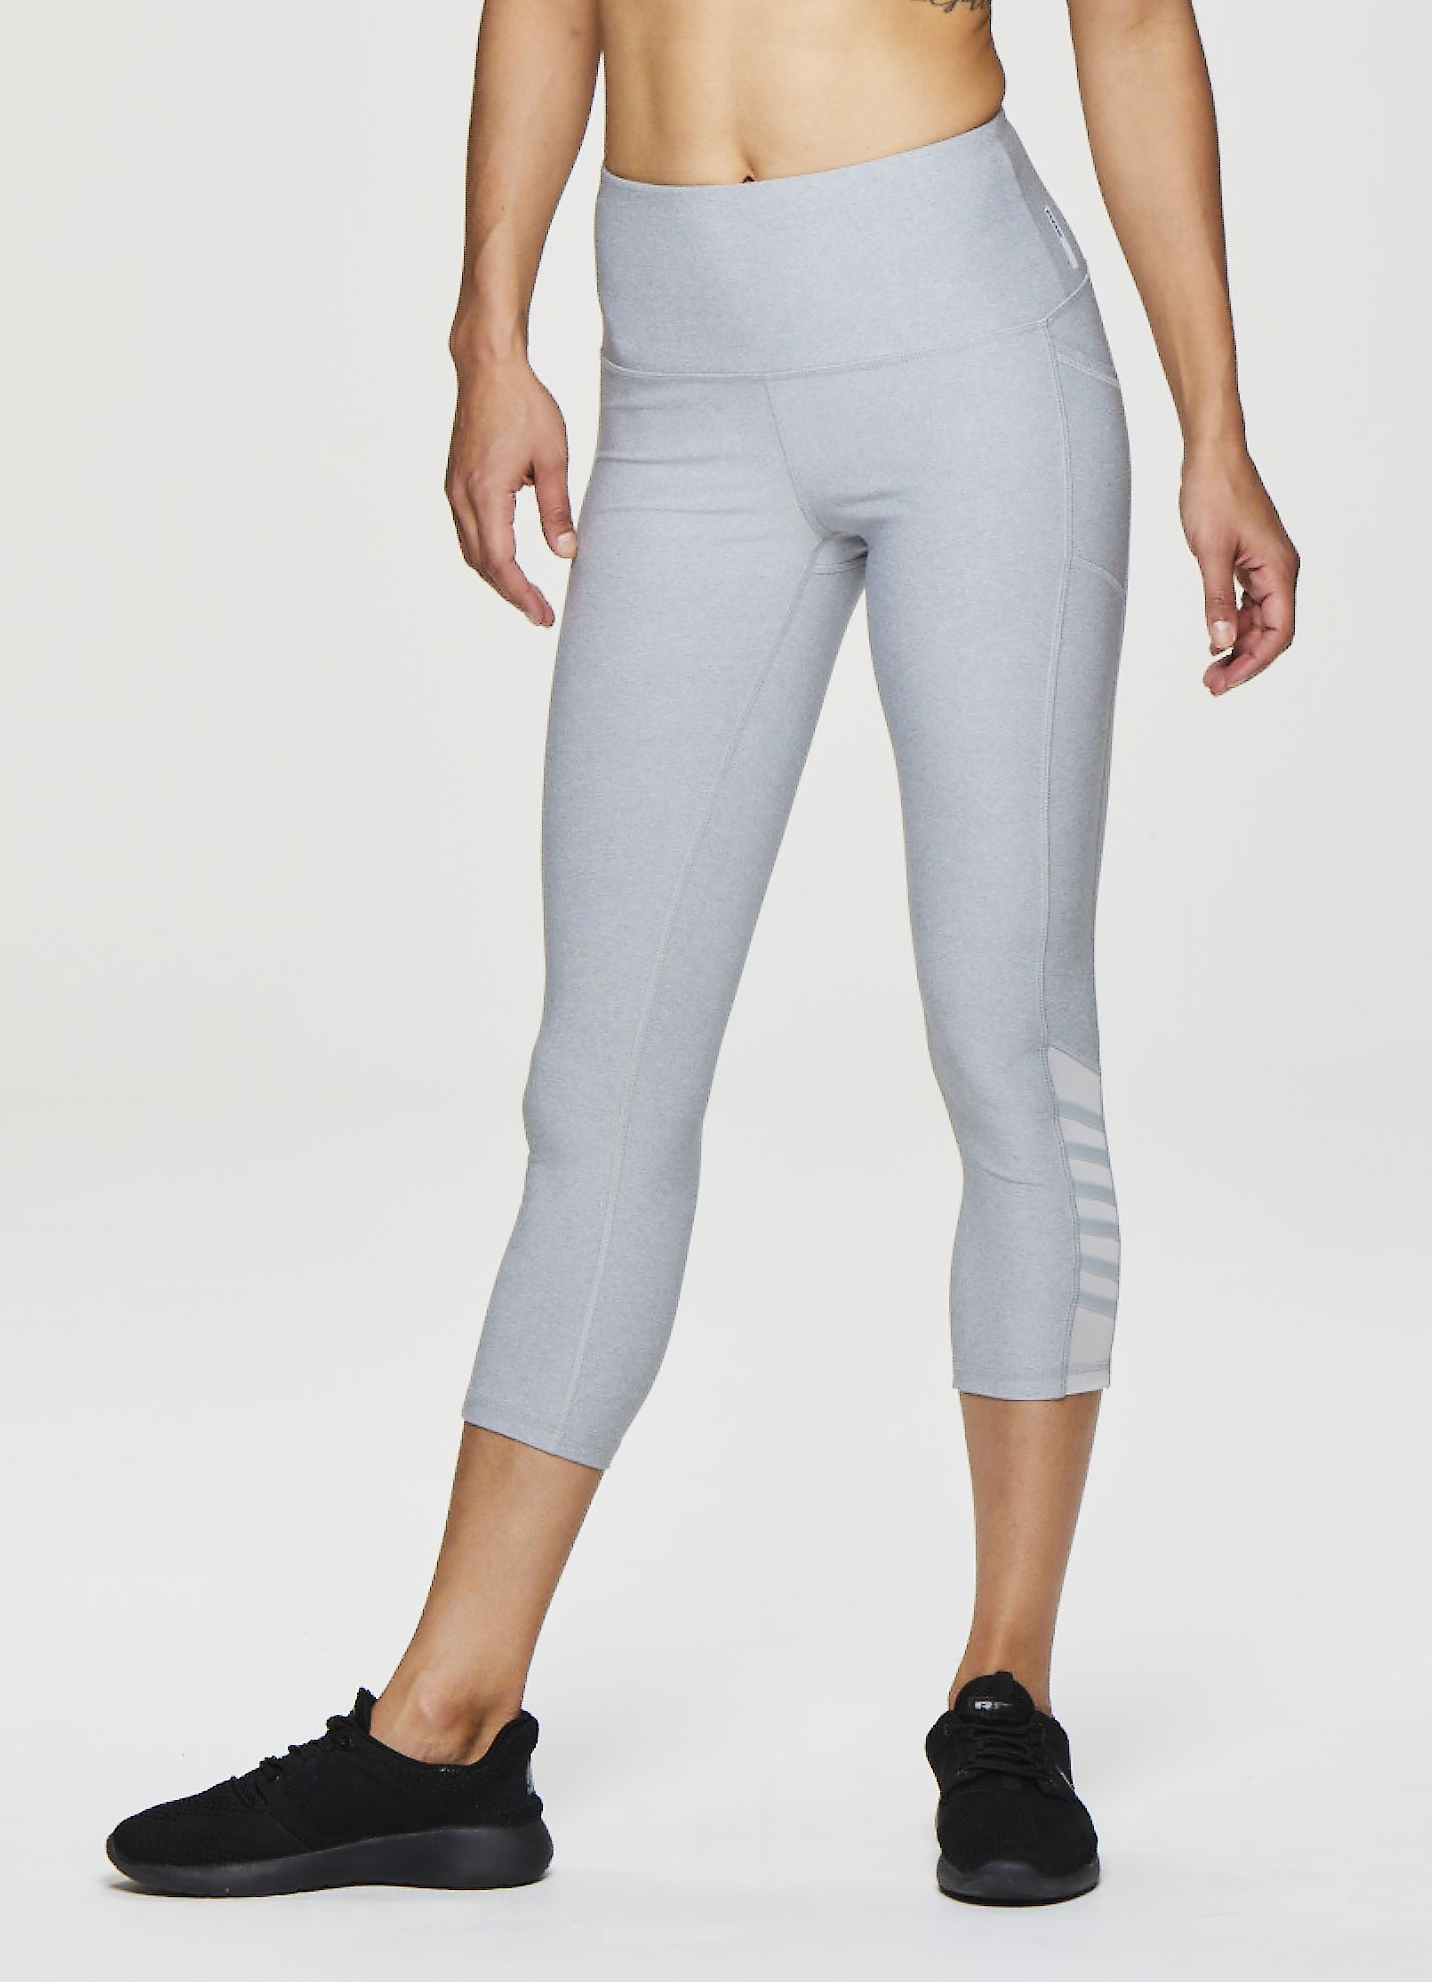 Women's Active Capri Leggings with Mesh Side Detail